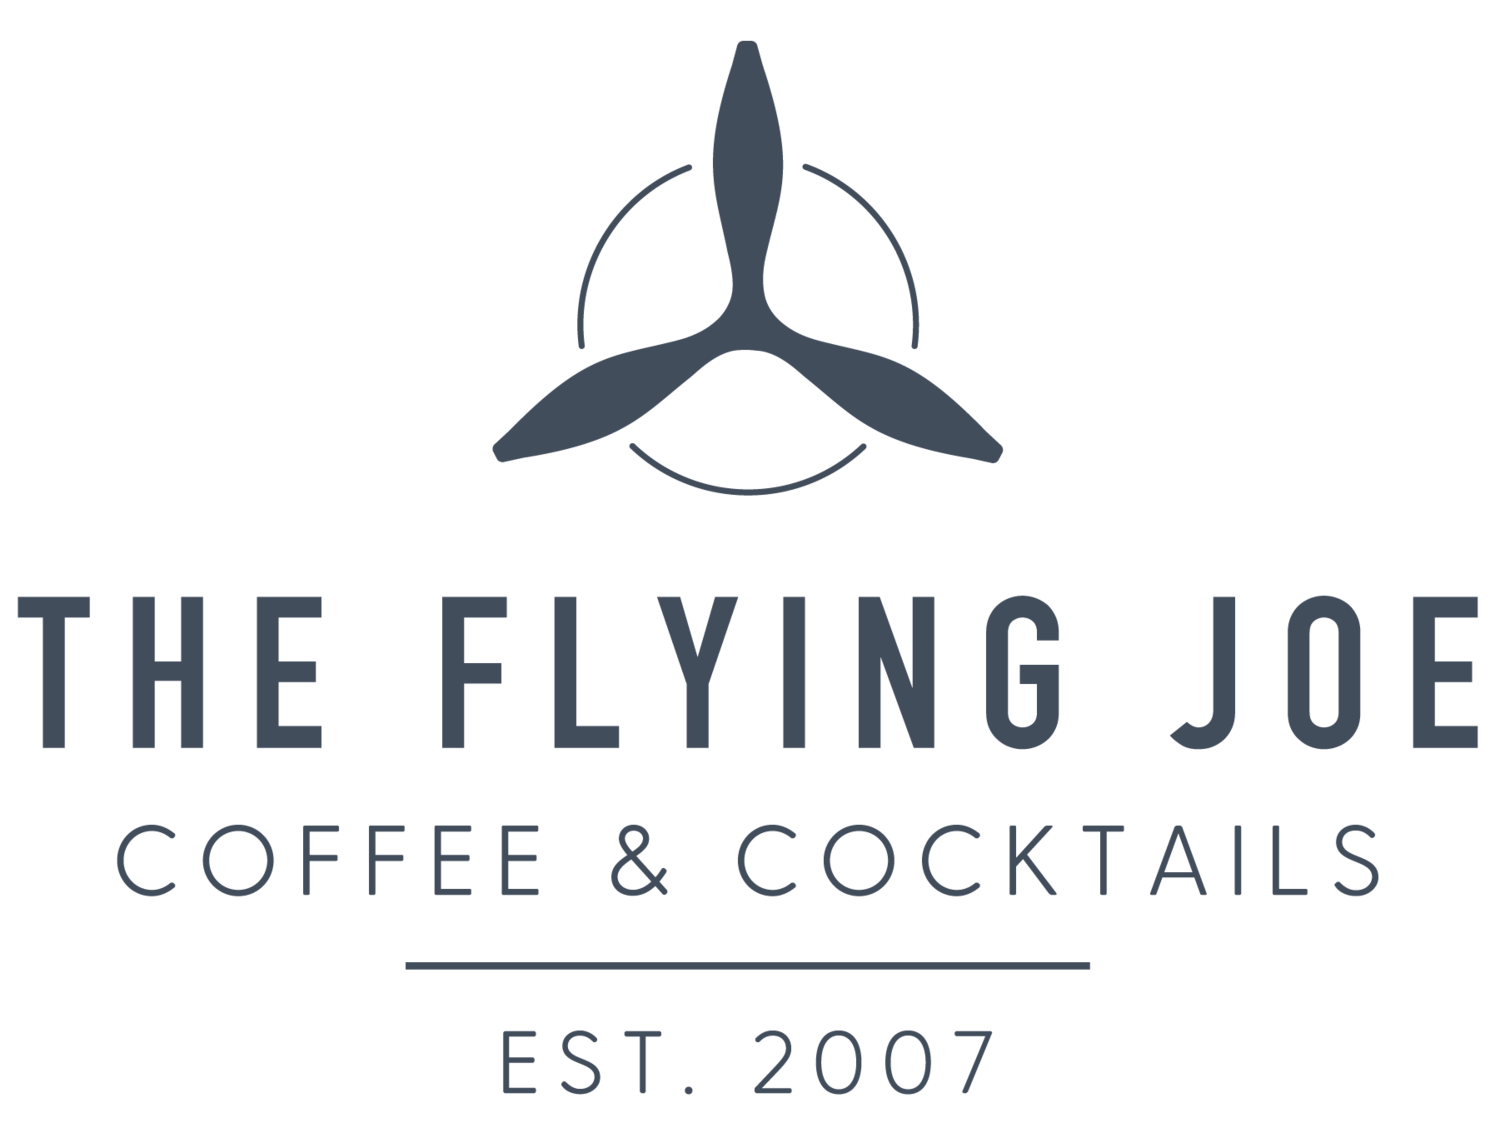 The Flying Joe